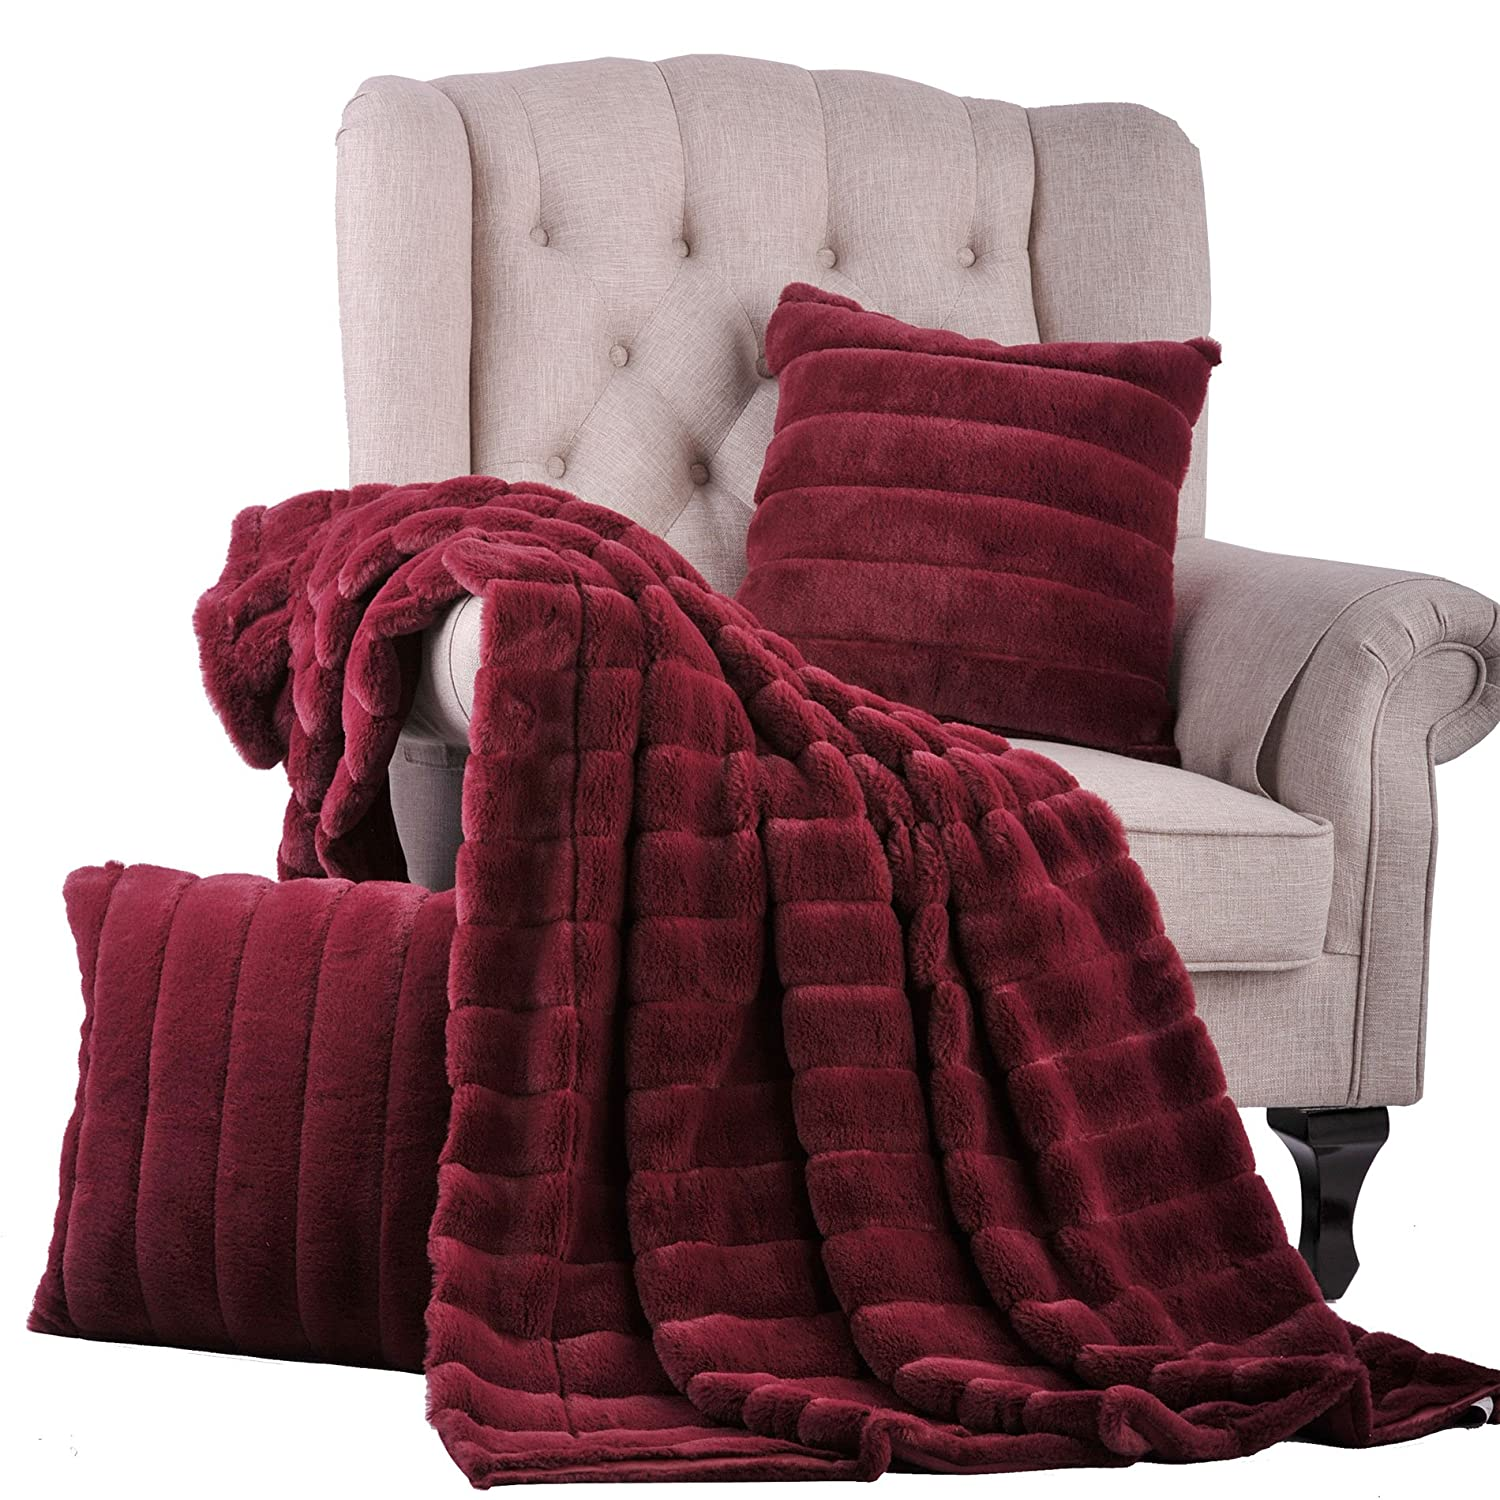 Burgundy 60 x 80 BNF Home 60 x 80 Home Soft Things Boon Rabbit Fur Throw with 2 Pillow Combo Set